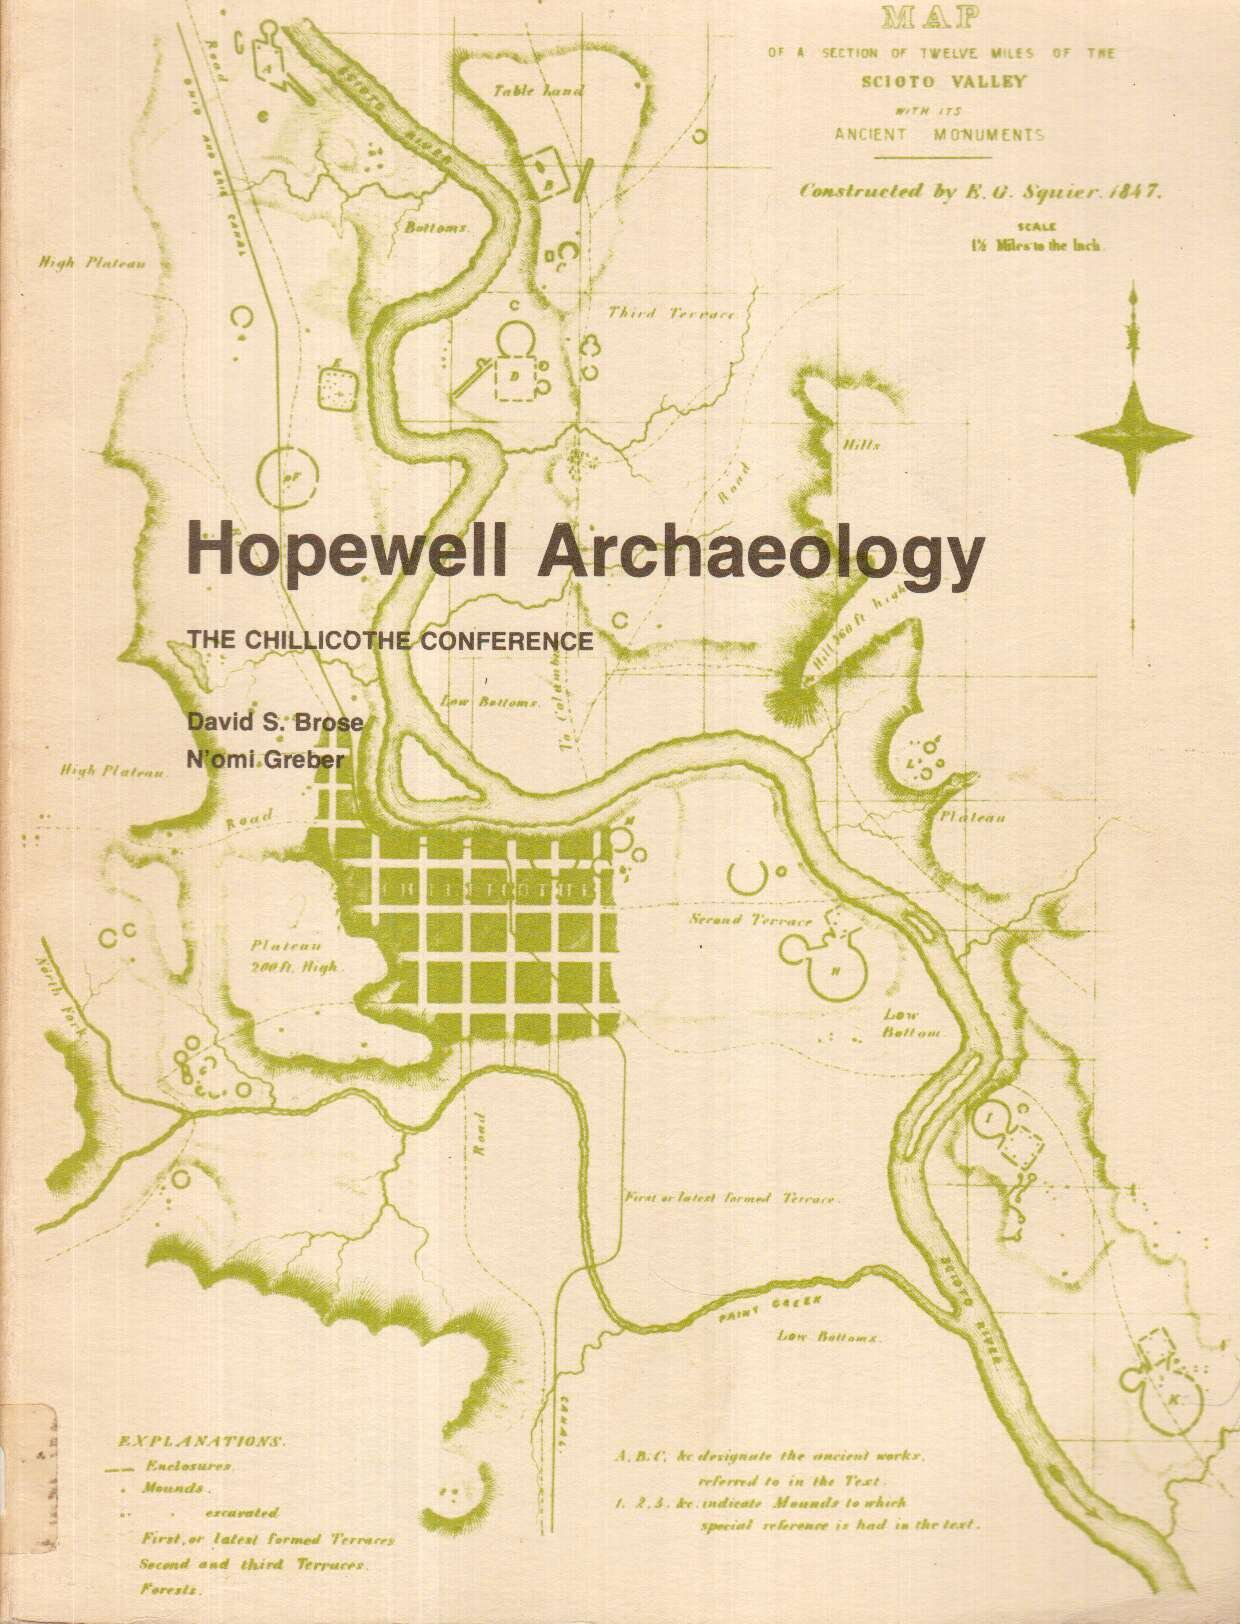 Hopewell Archaeology The Chillicothe Conference David S Brose N